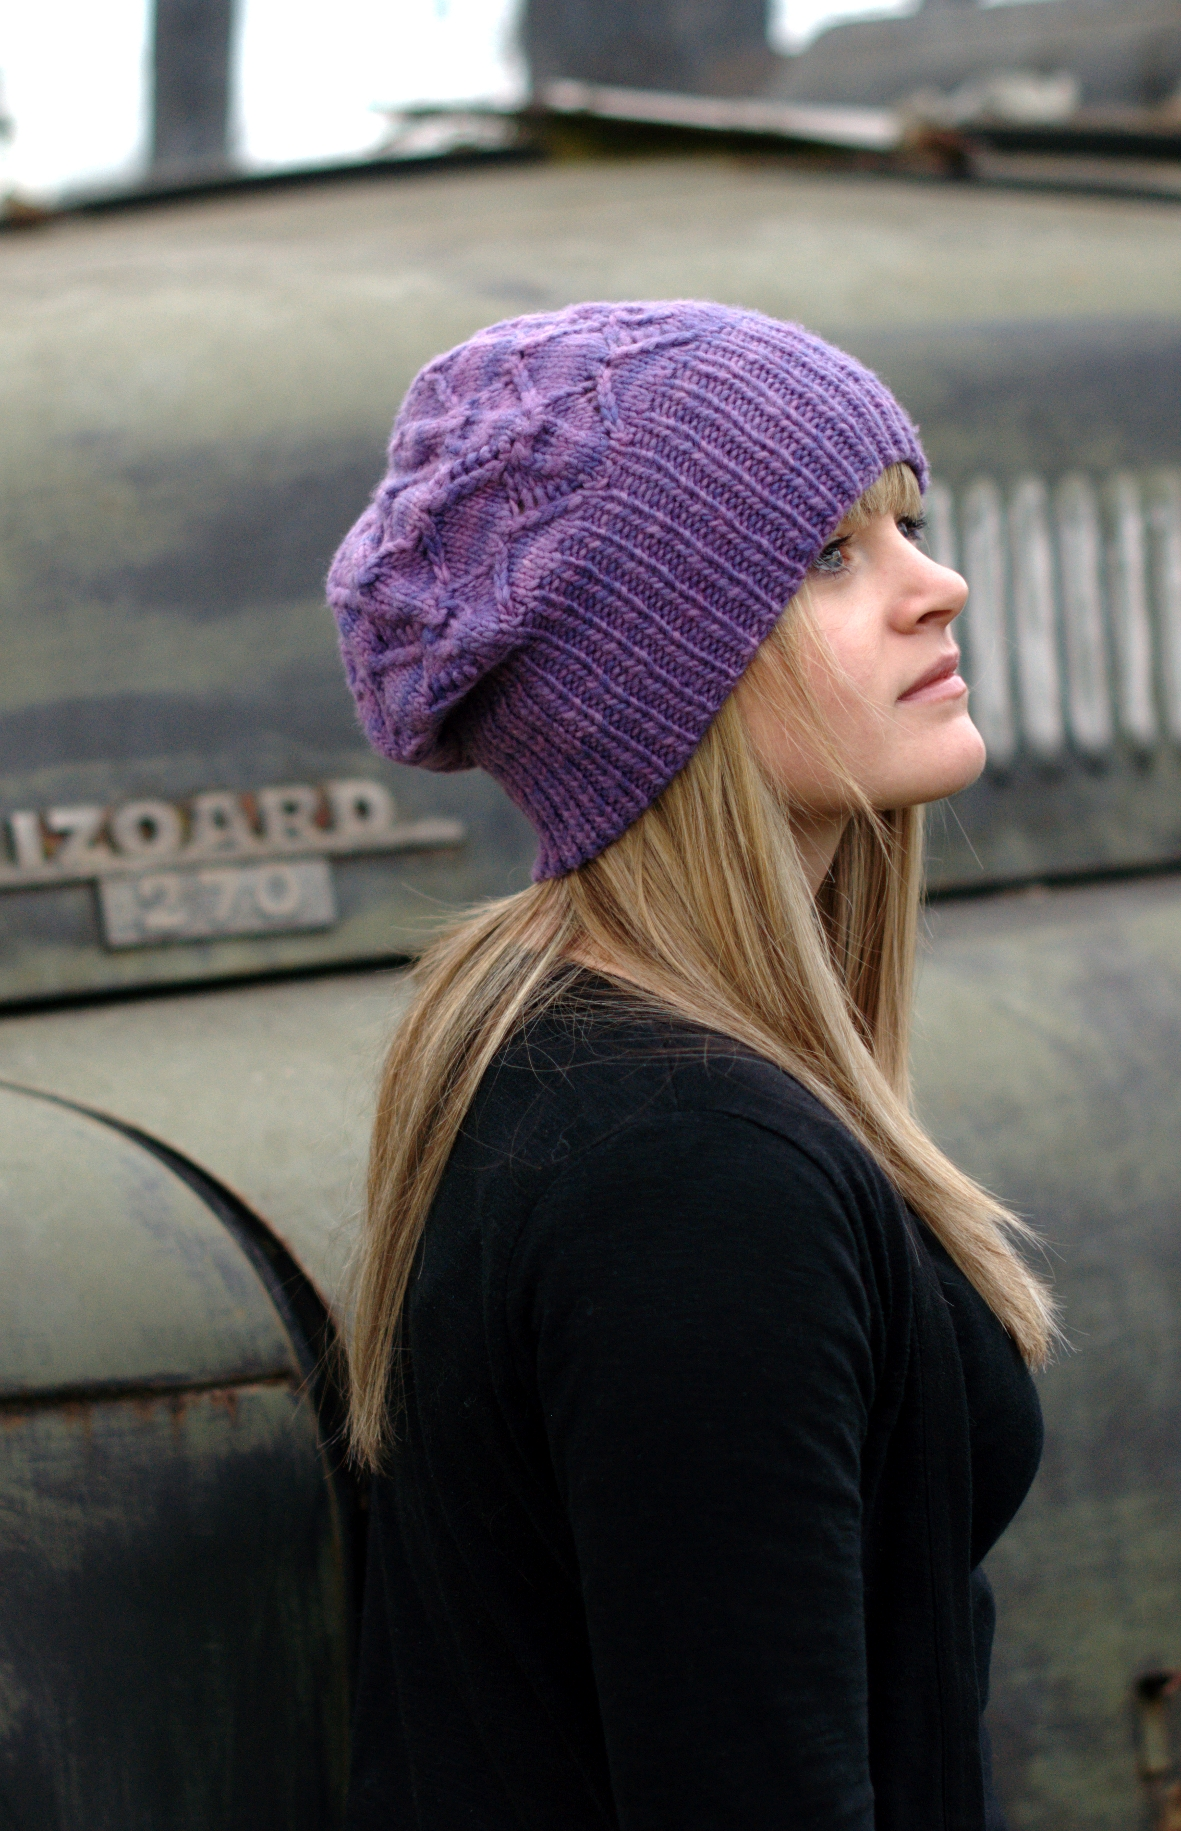 Starburst slouchy Hat knitting pattern for aran or worsted weight yarn